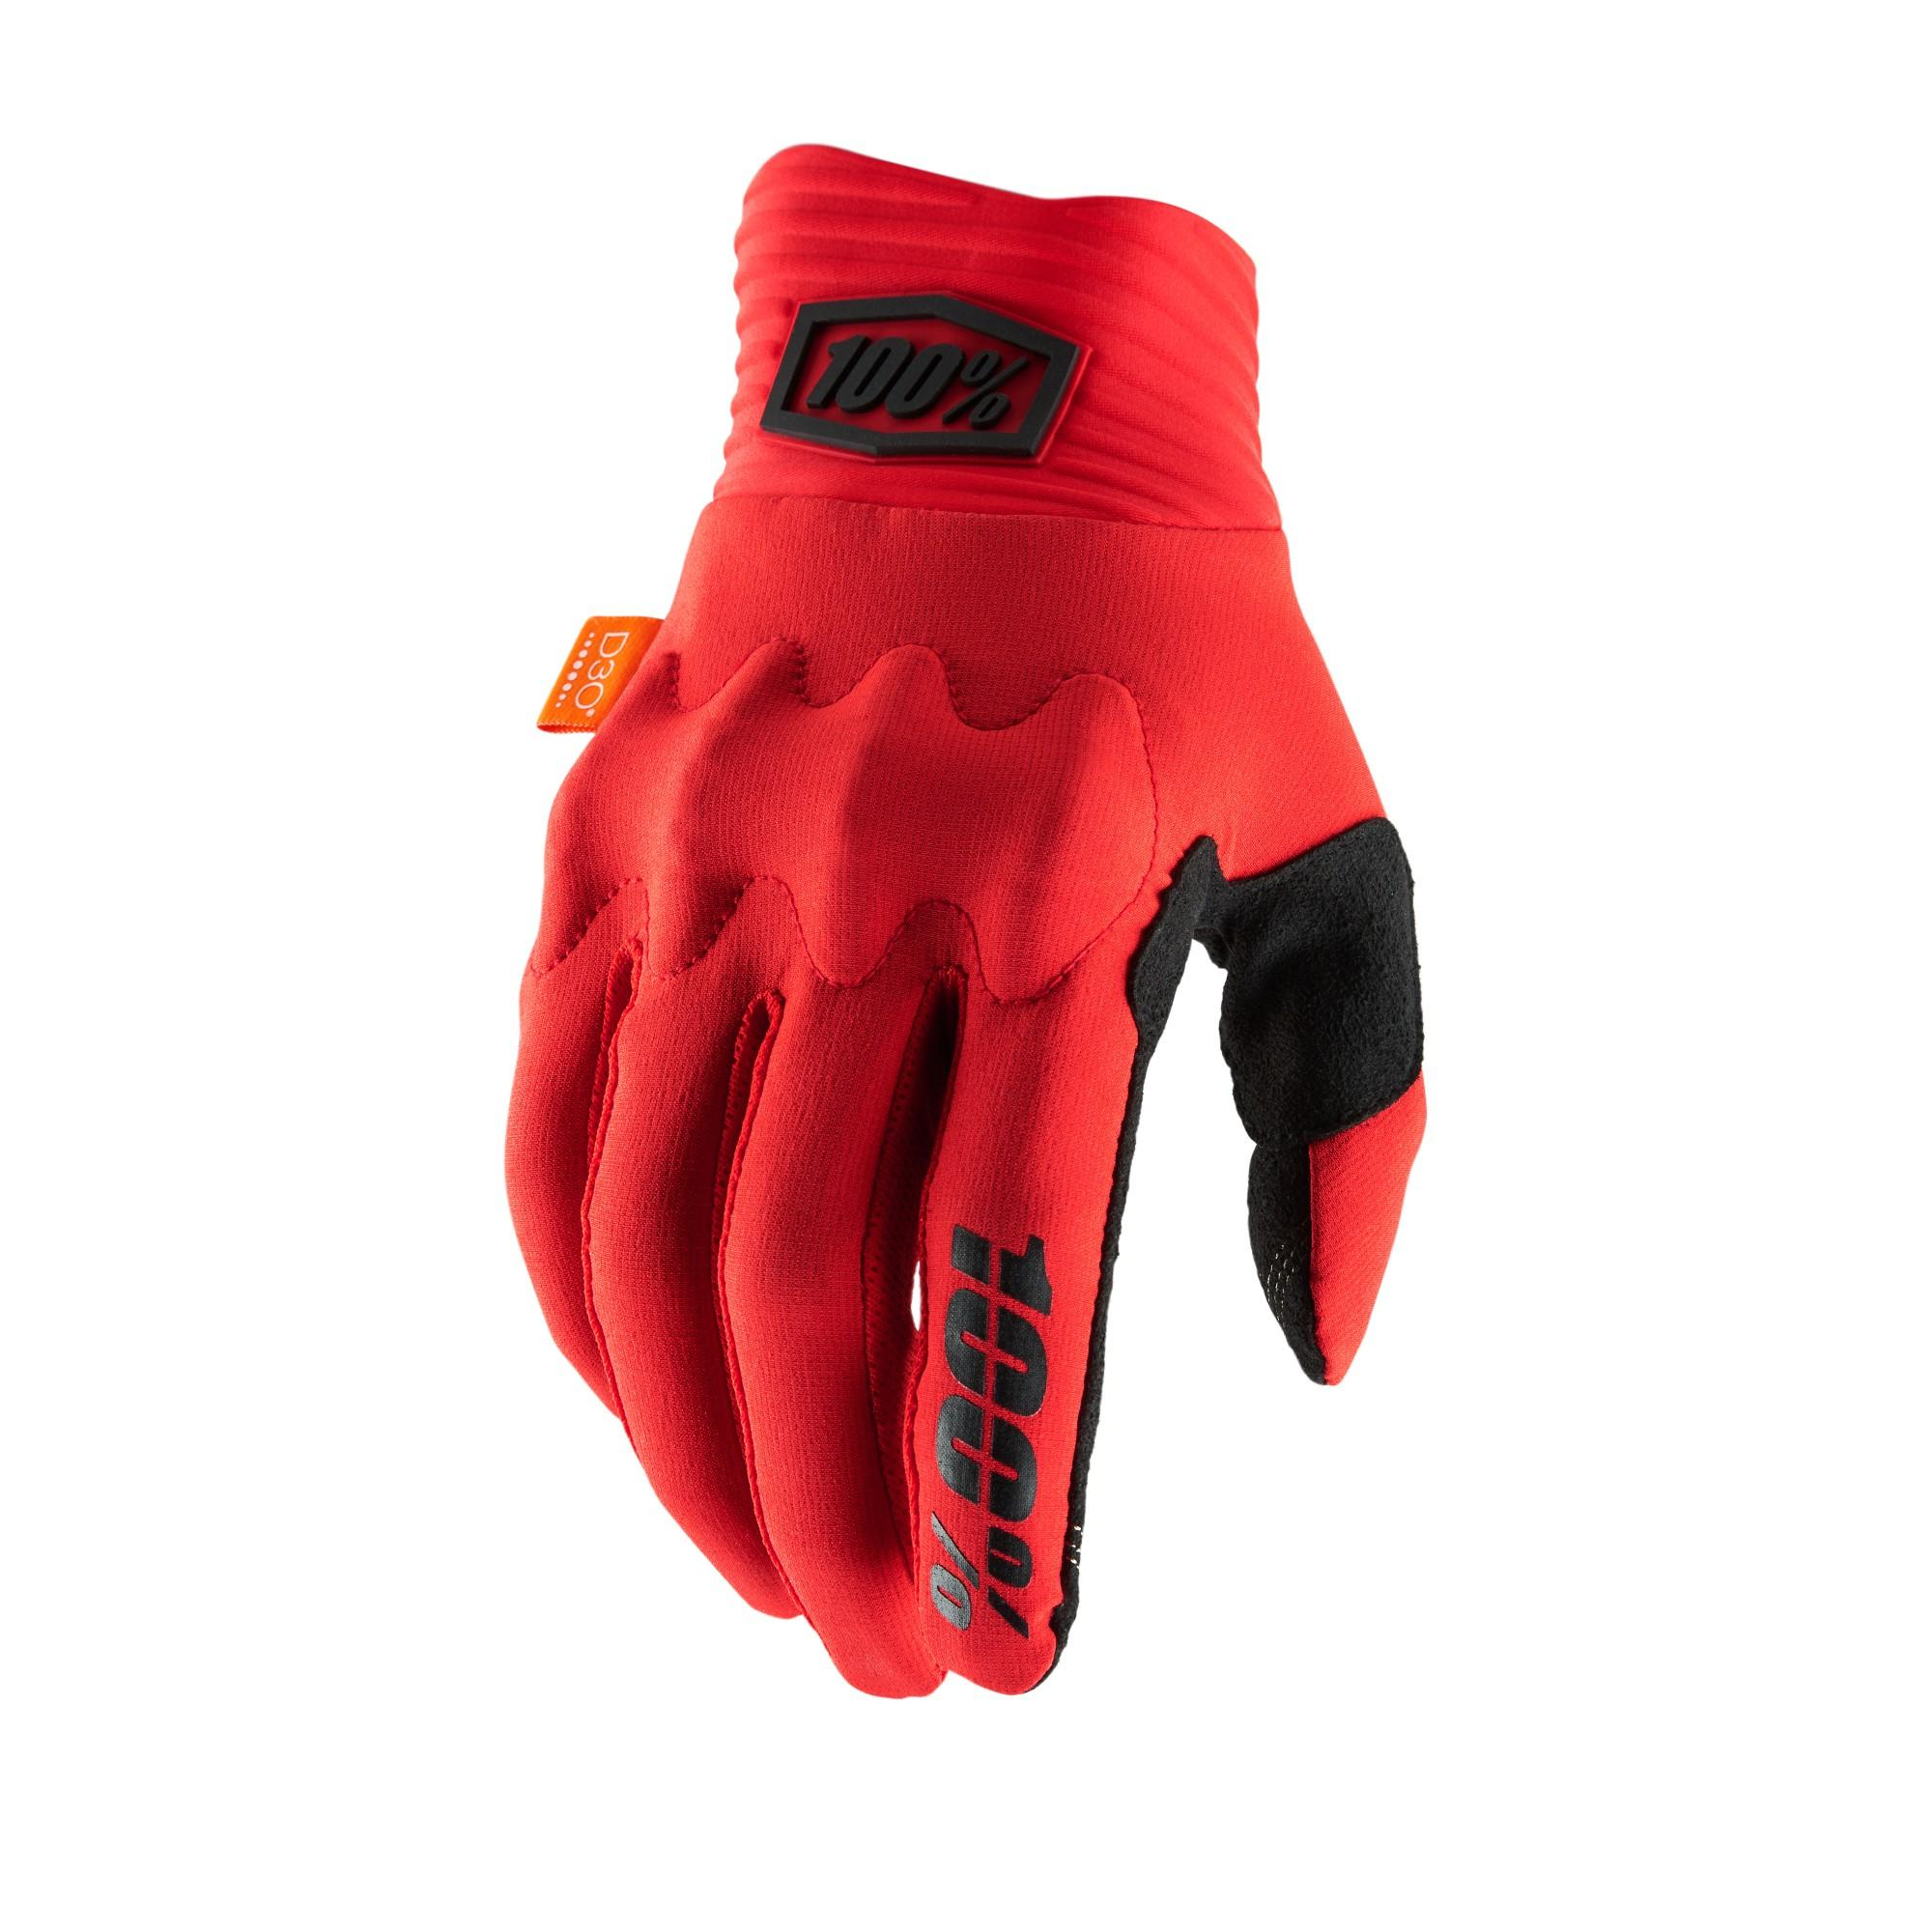 COGNITO 100% Glove Red/Black